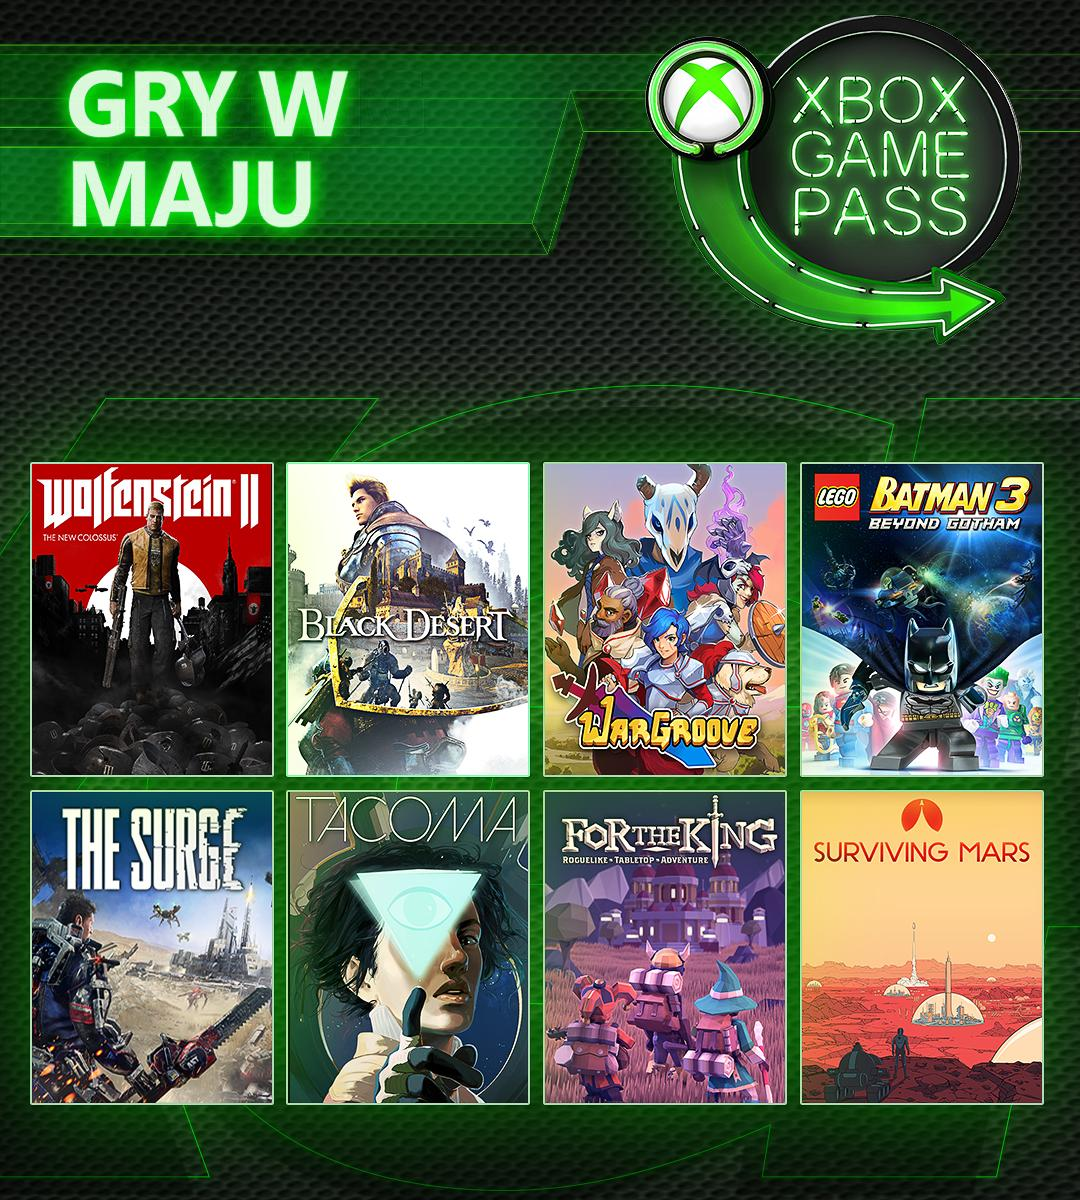 wolfenstein-ii-the-new-colossus-entre-los-juegos-del-xbox-game-pass-de-mayo-frikigamers.com